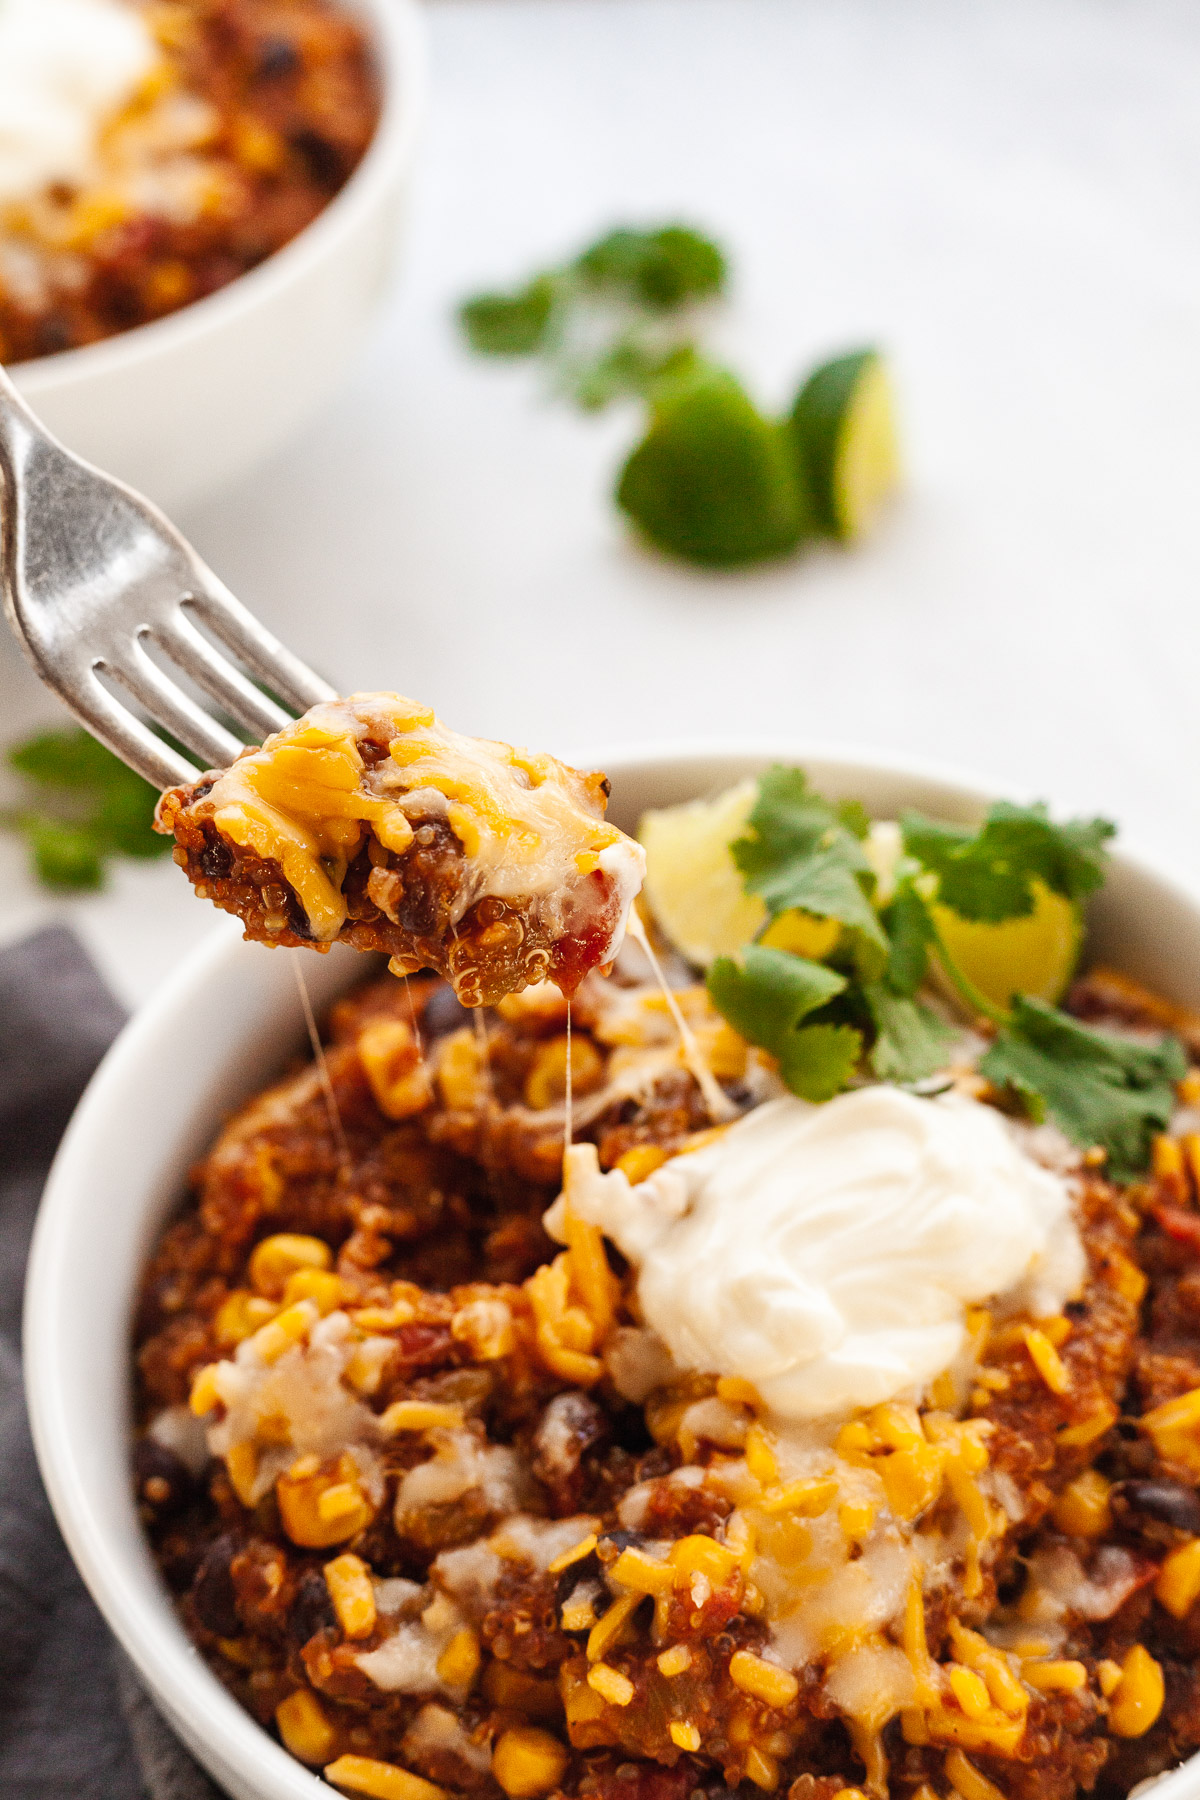 close up image of quinoa enchilada in white bowl with fork scooping out casserole